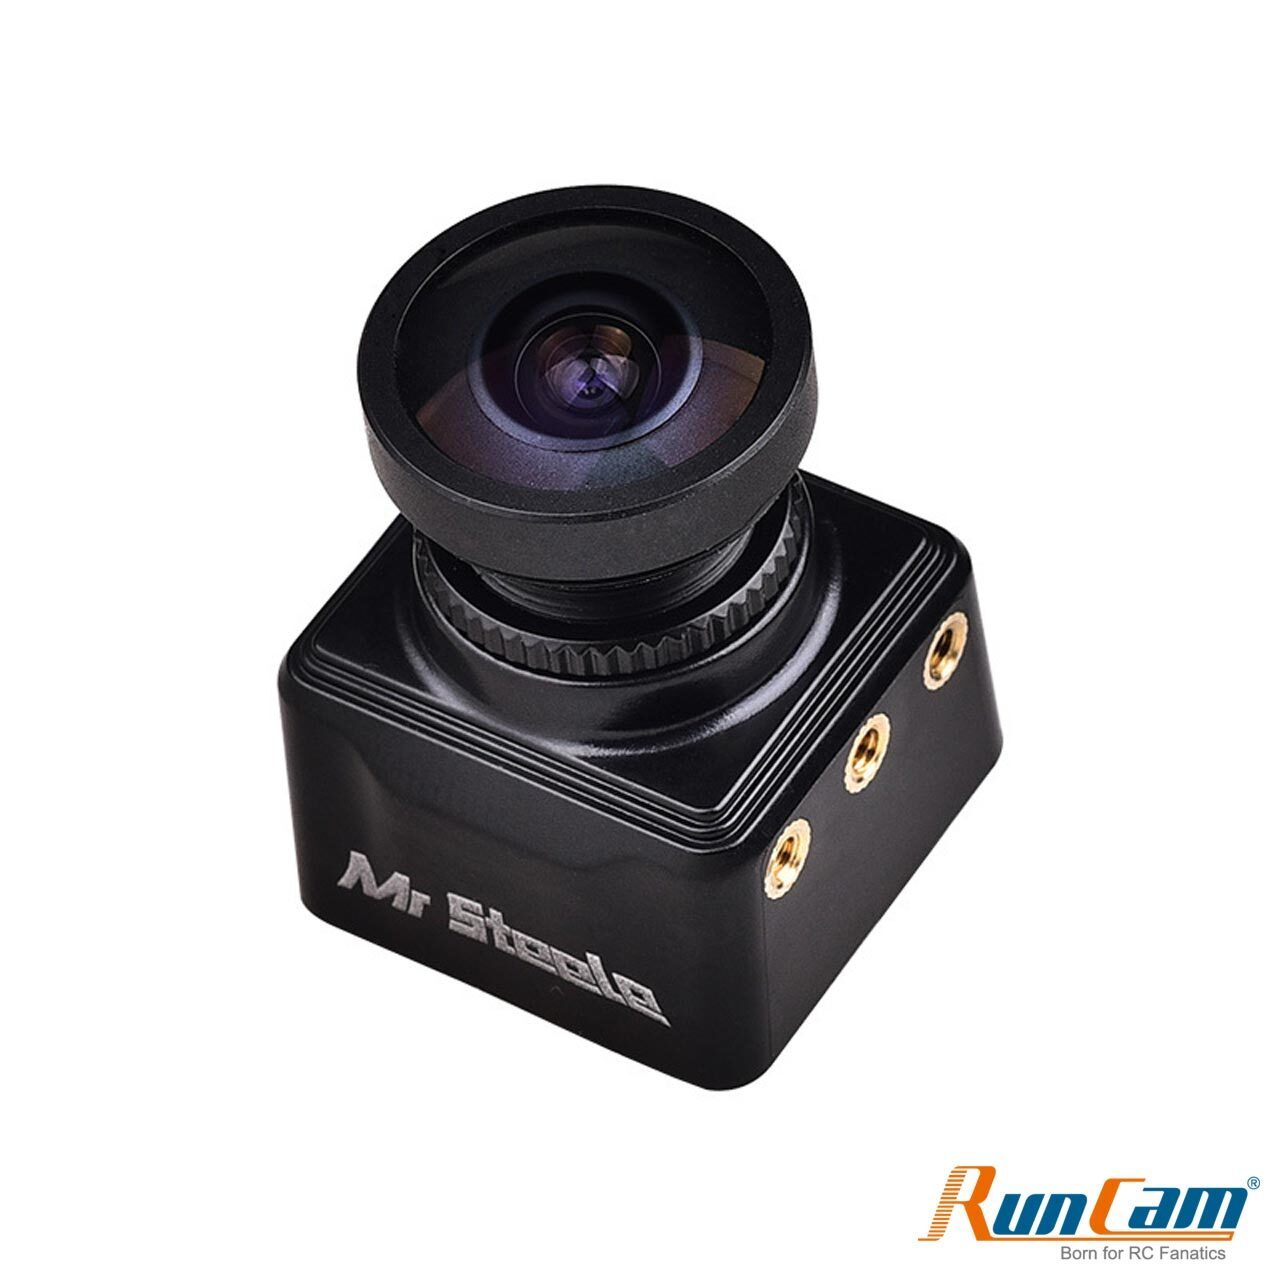 RunCam Swift Mini 2 Mr. Steele Edition (600TVL CCD FPV Camera 2.5mm)